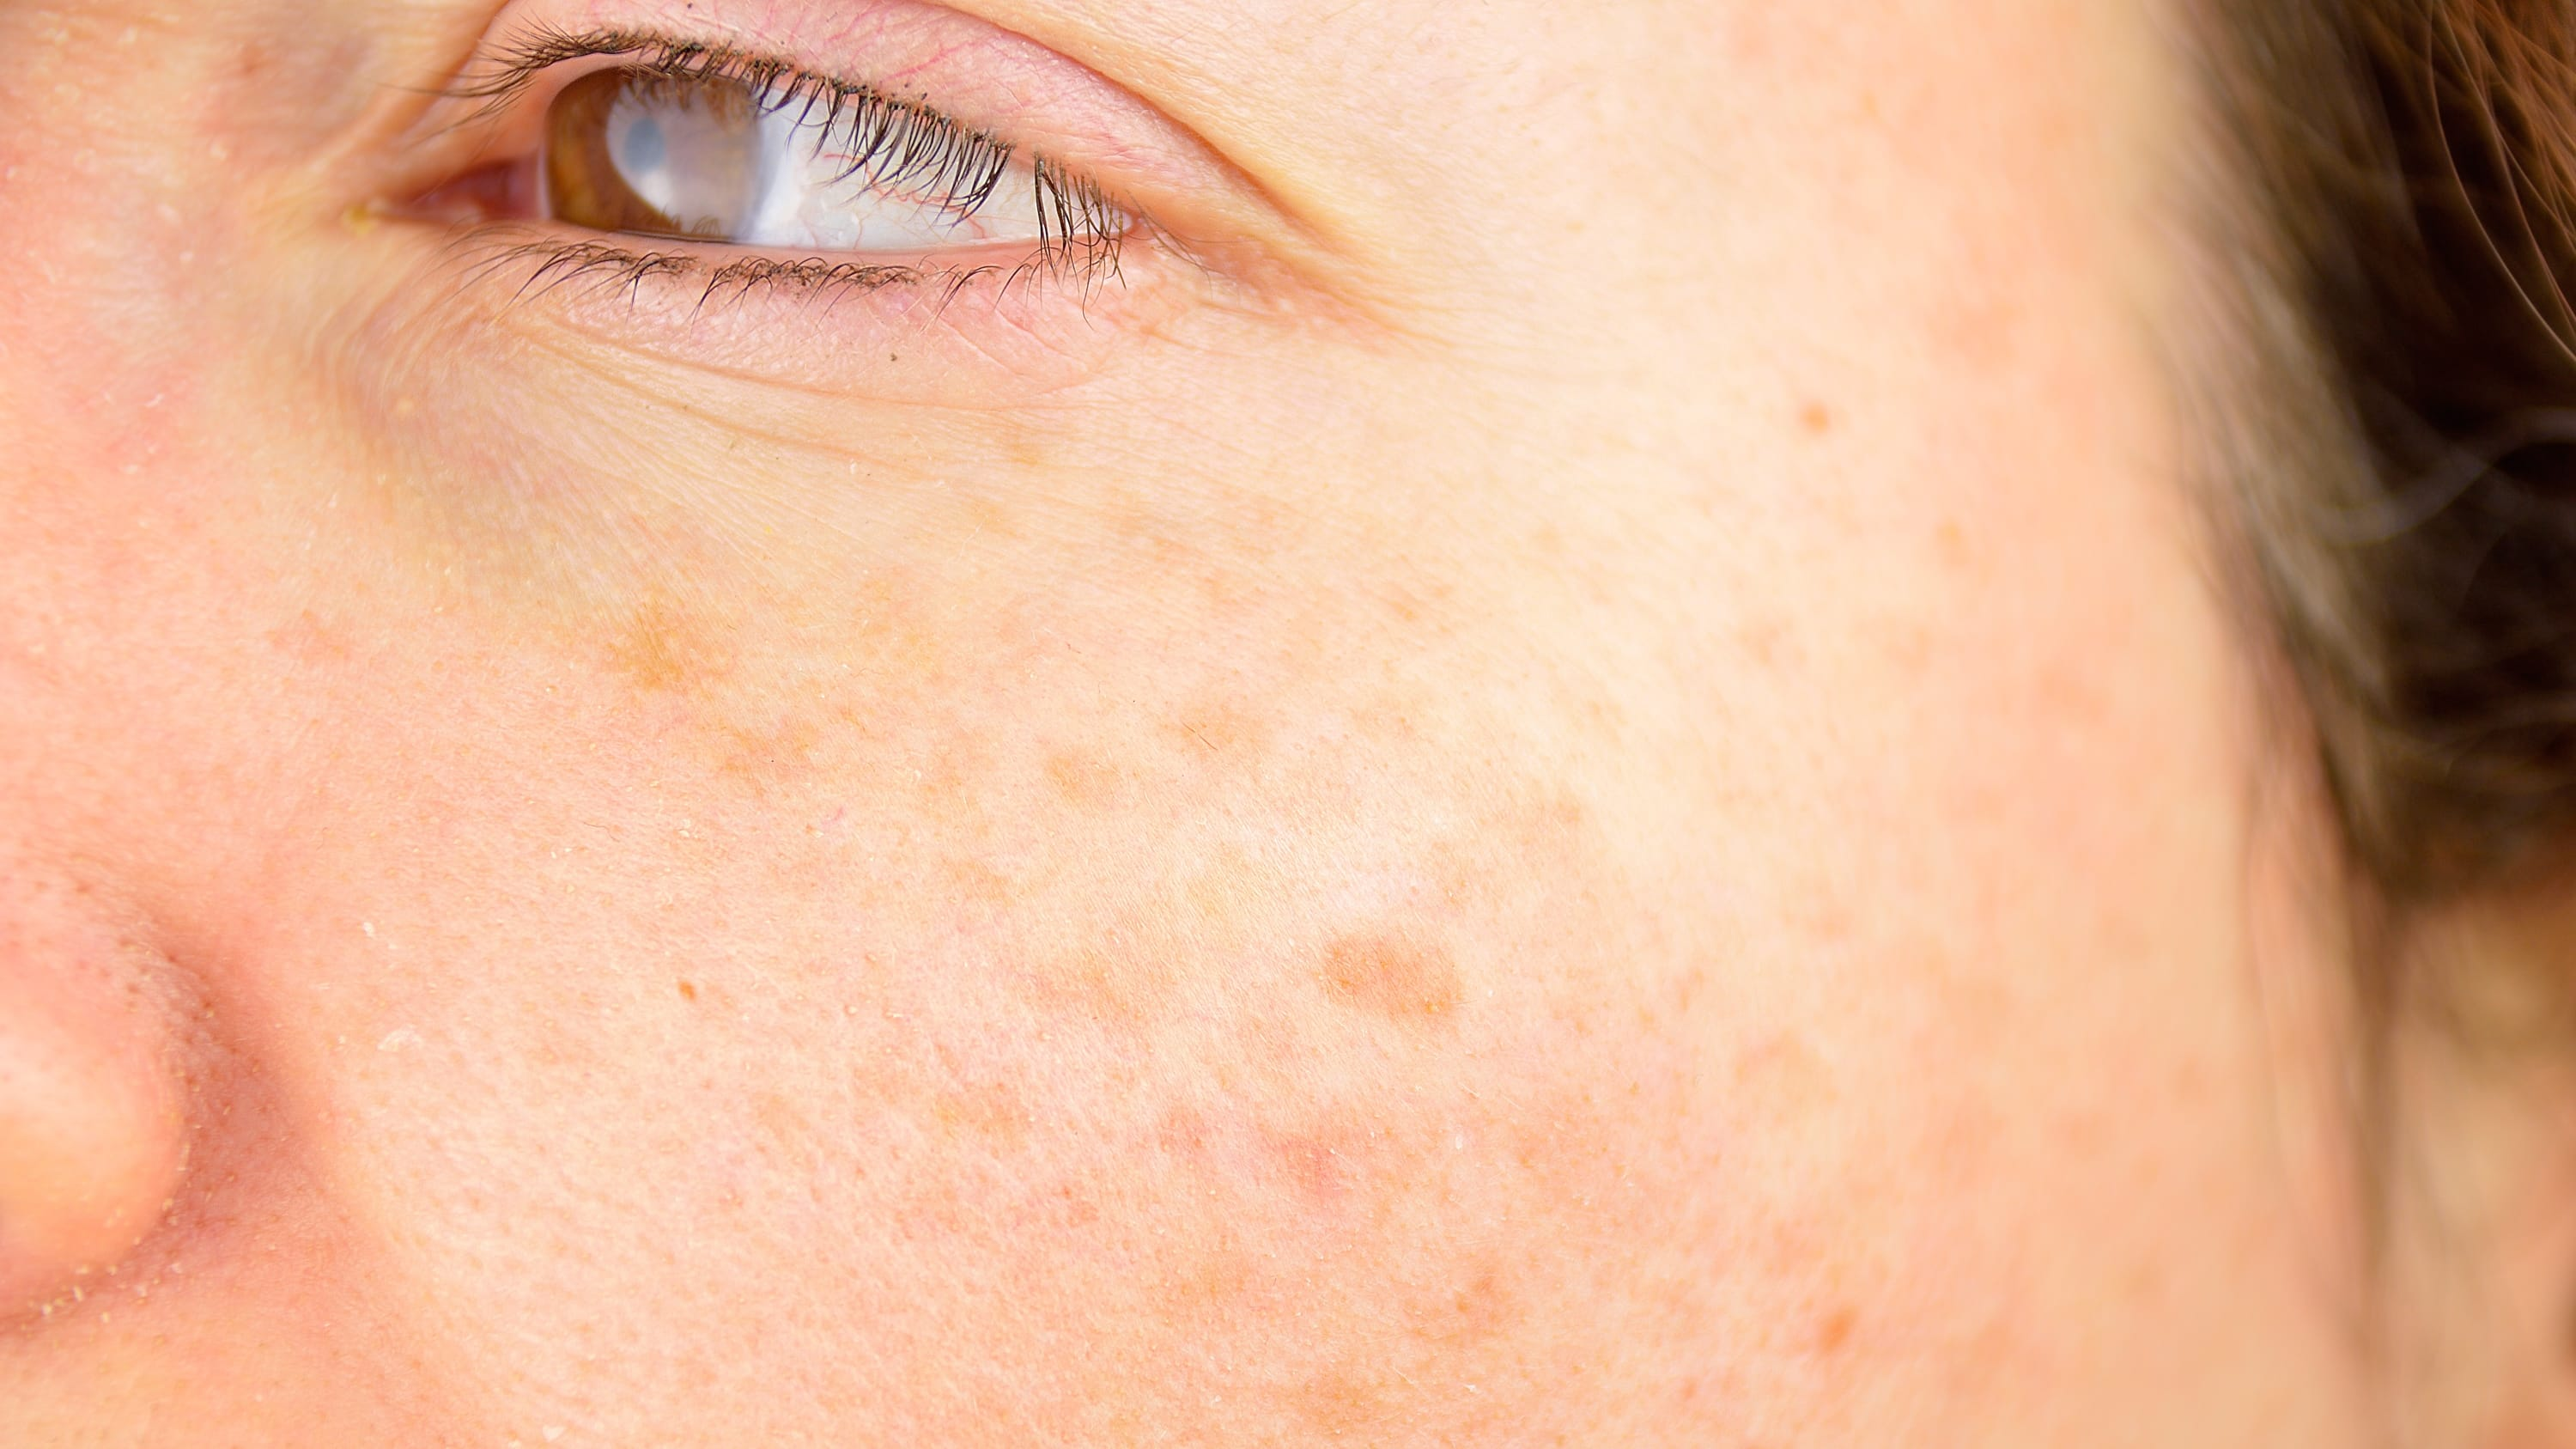 woman cheek with liver spot causes by sun damage